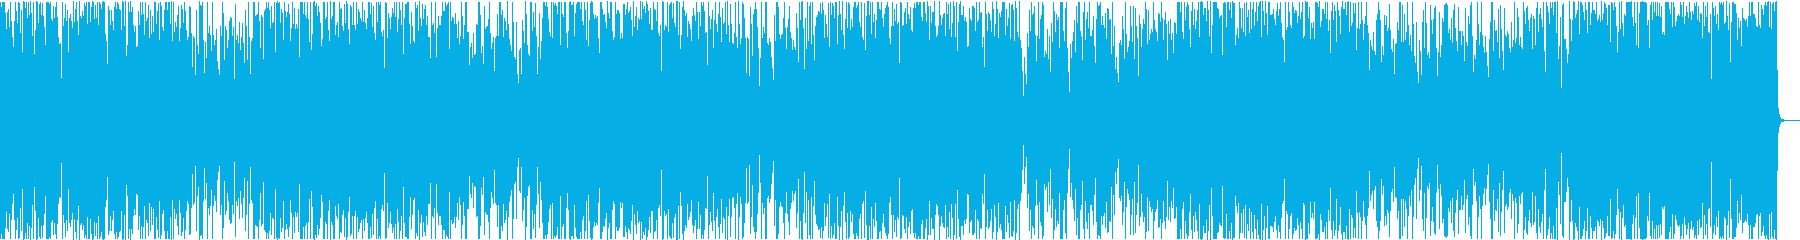 Ikeike / Fast Jazz's reproduced waveform